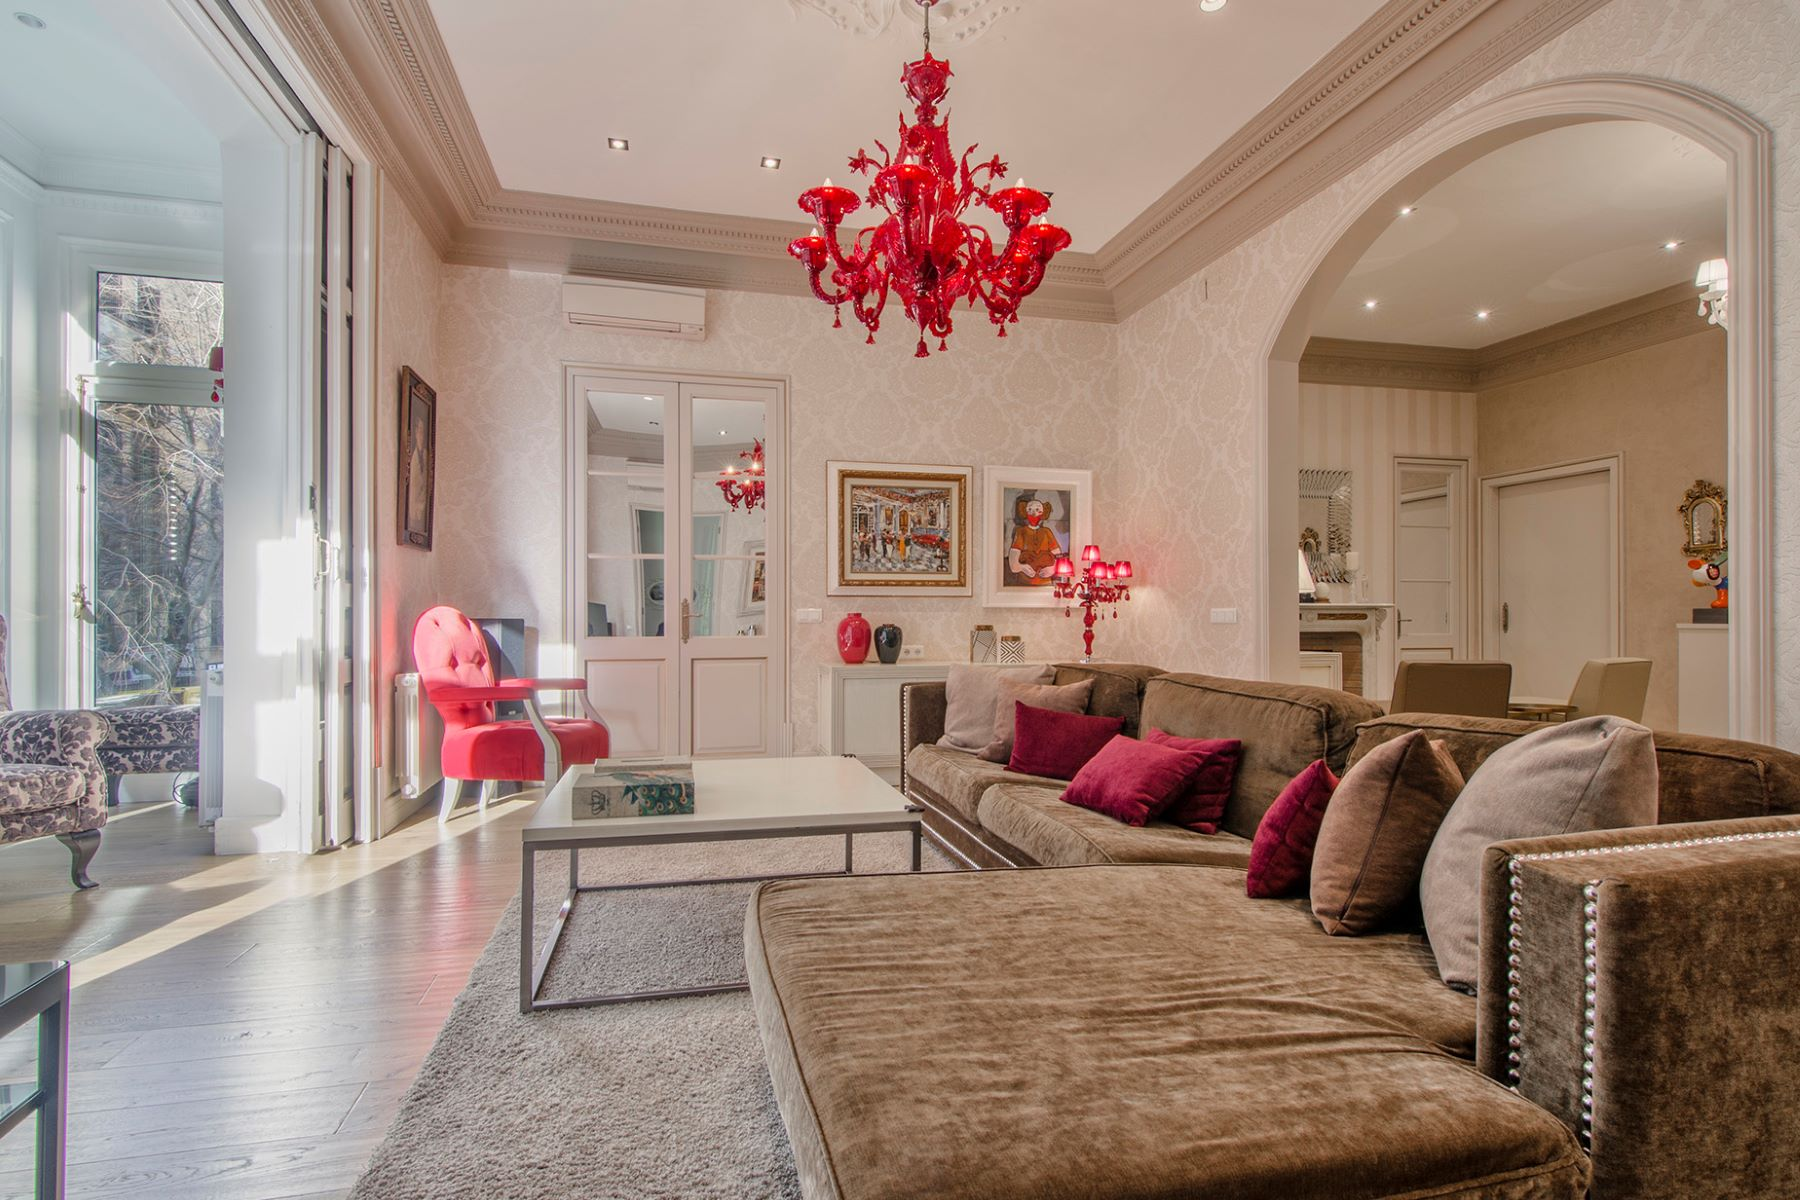 Apartment for Sale at Exclusive Property in the Right Eixample Barcelona City, Barcelona, 08007 Spain